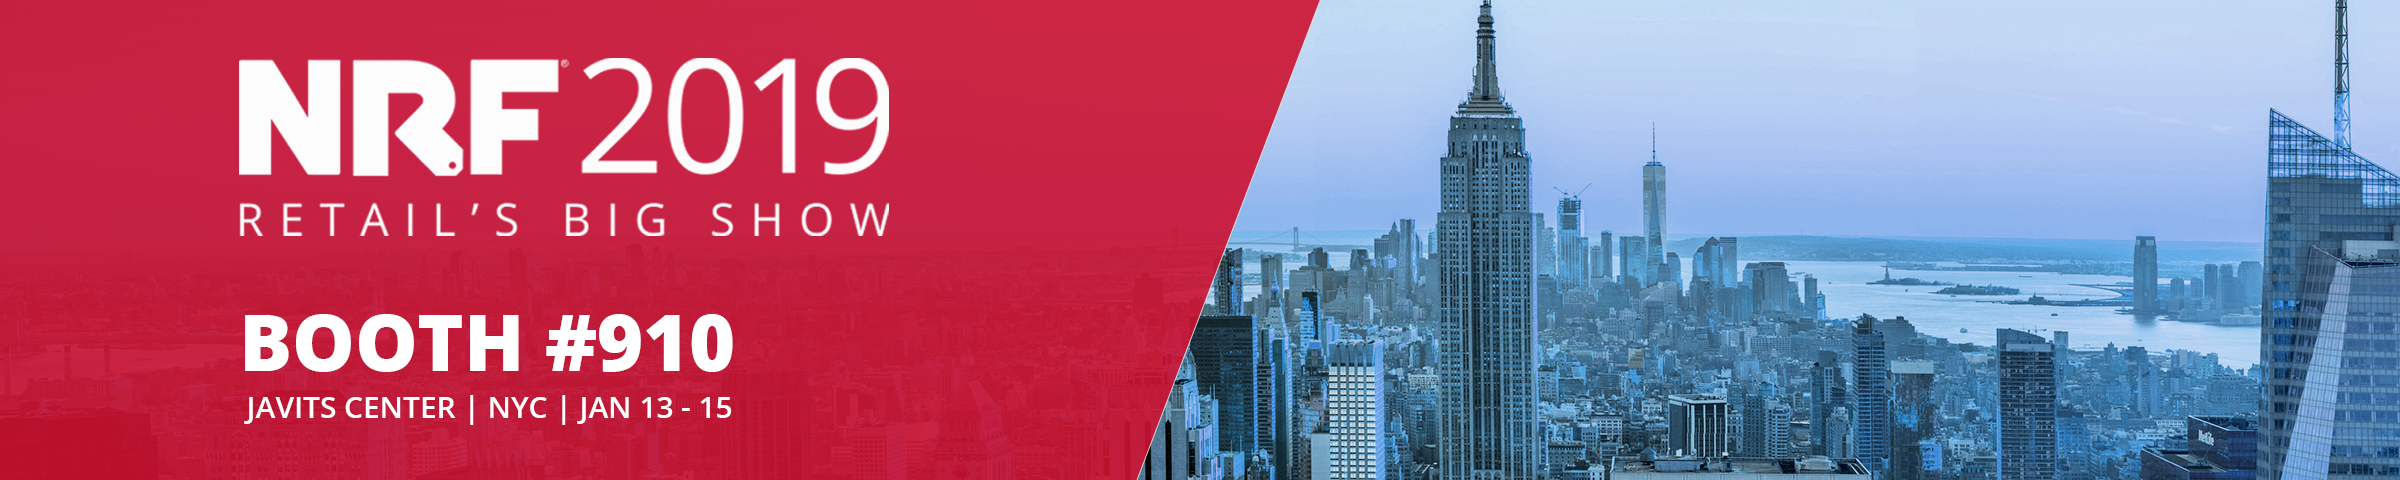 Find GSPANN at NRF 2019 - Booth #910 (January 13-15)